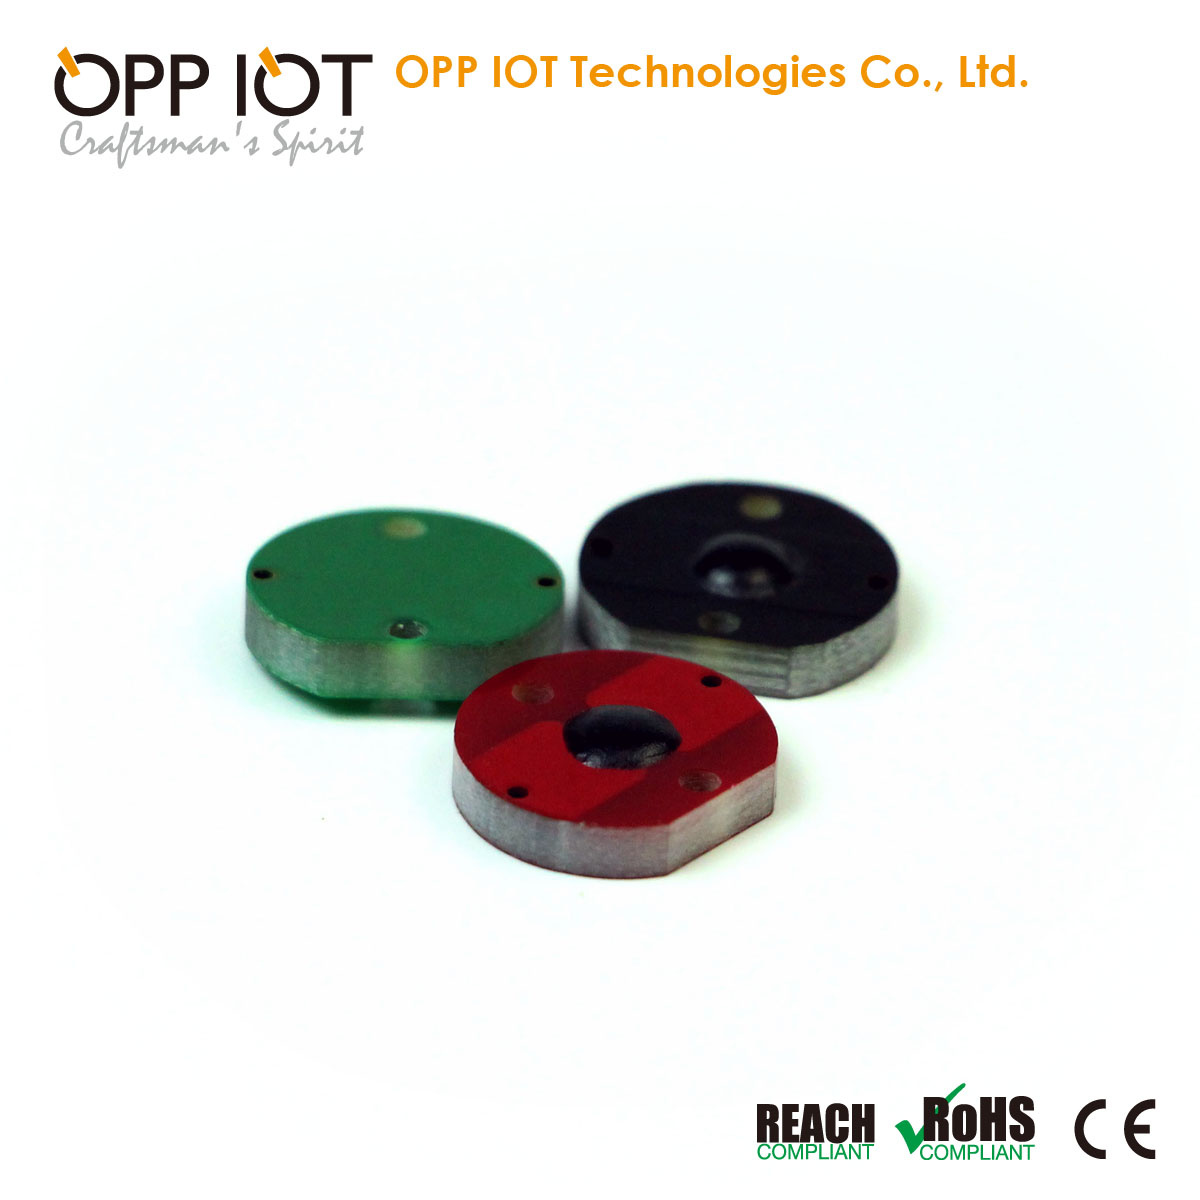 UHF Industrial Equipment Tracking Tag